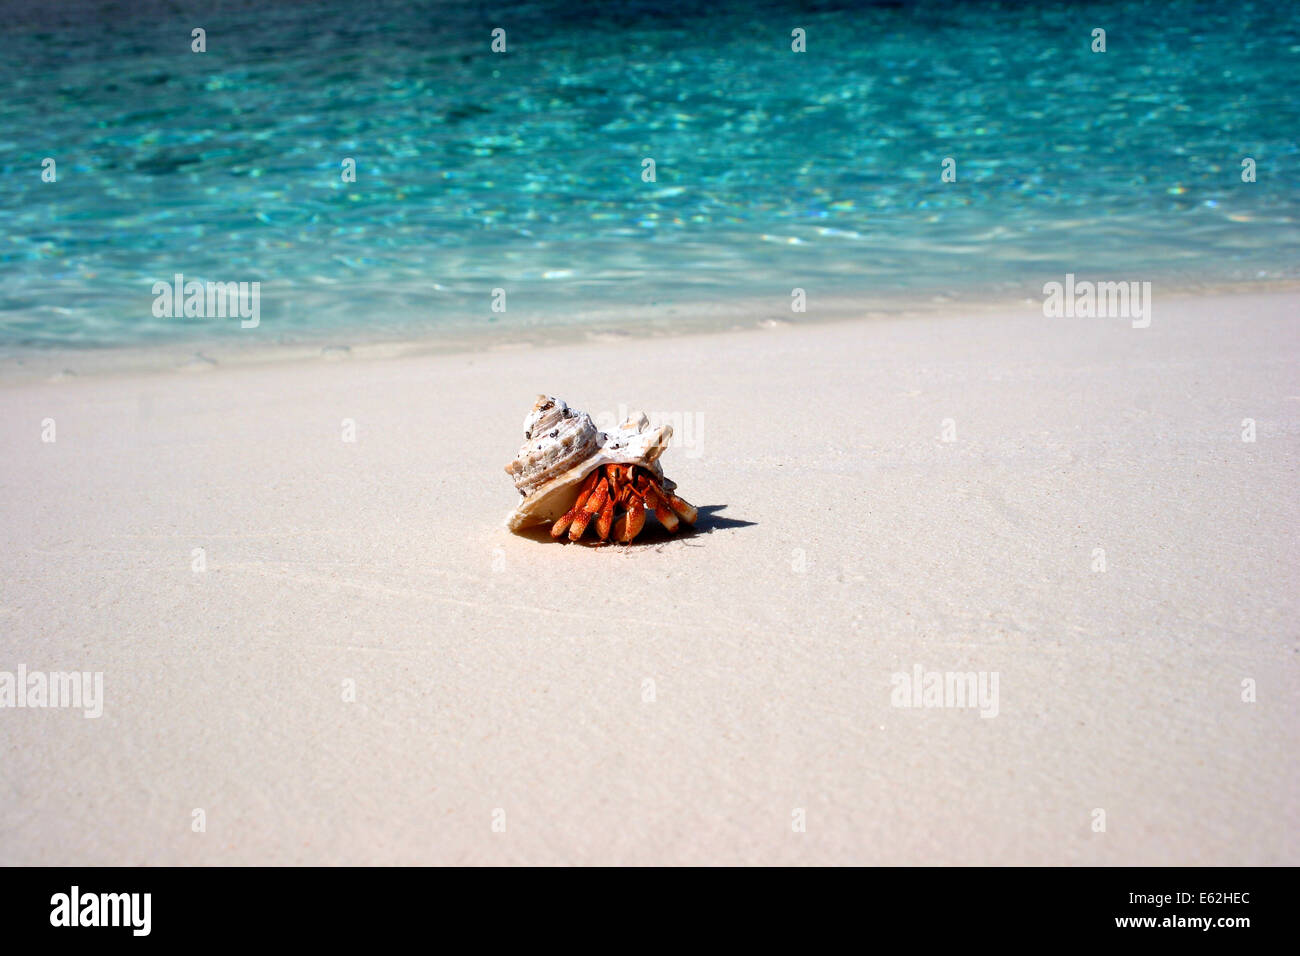 Hermit Crab on Prison Island, Cocos Keeling Islands - Stock Image